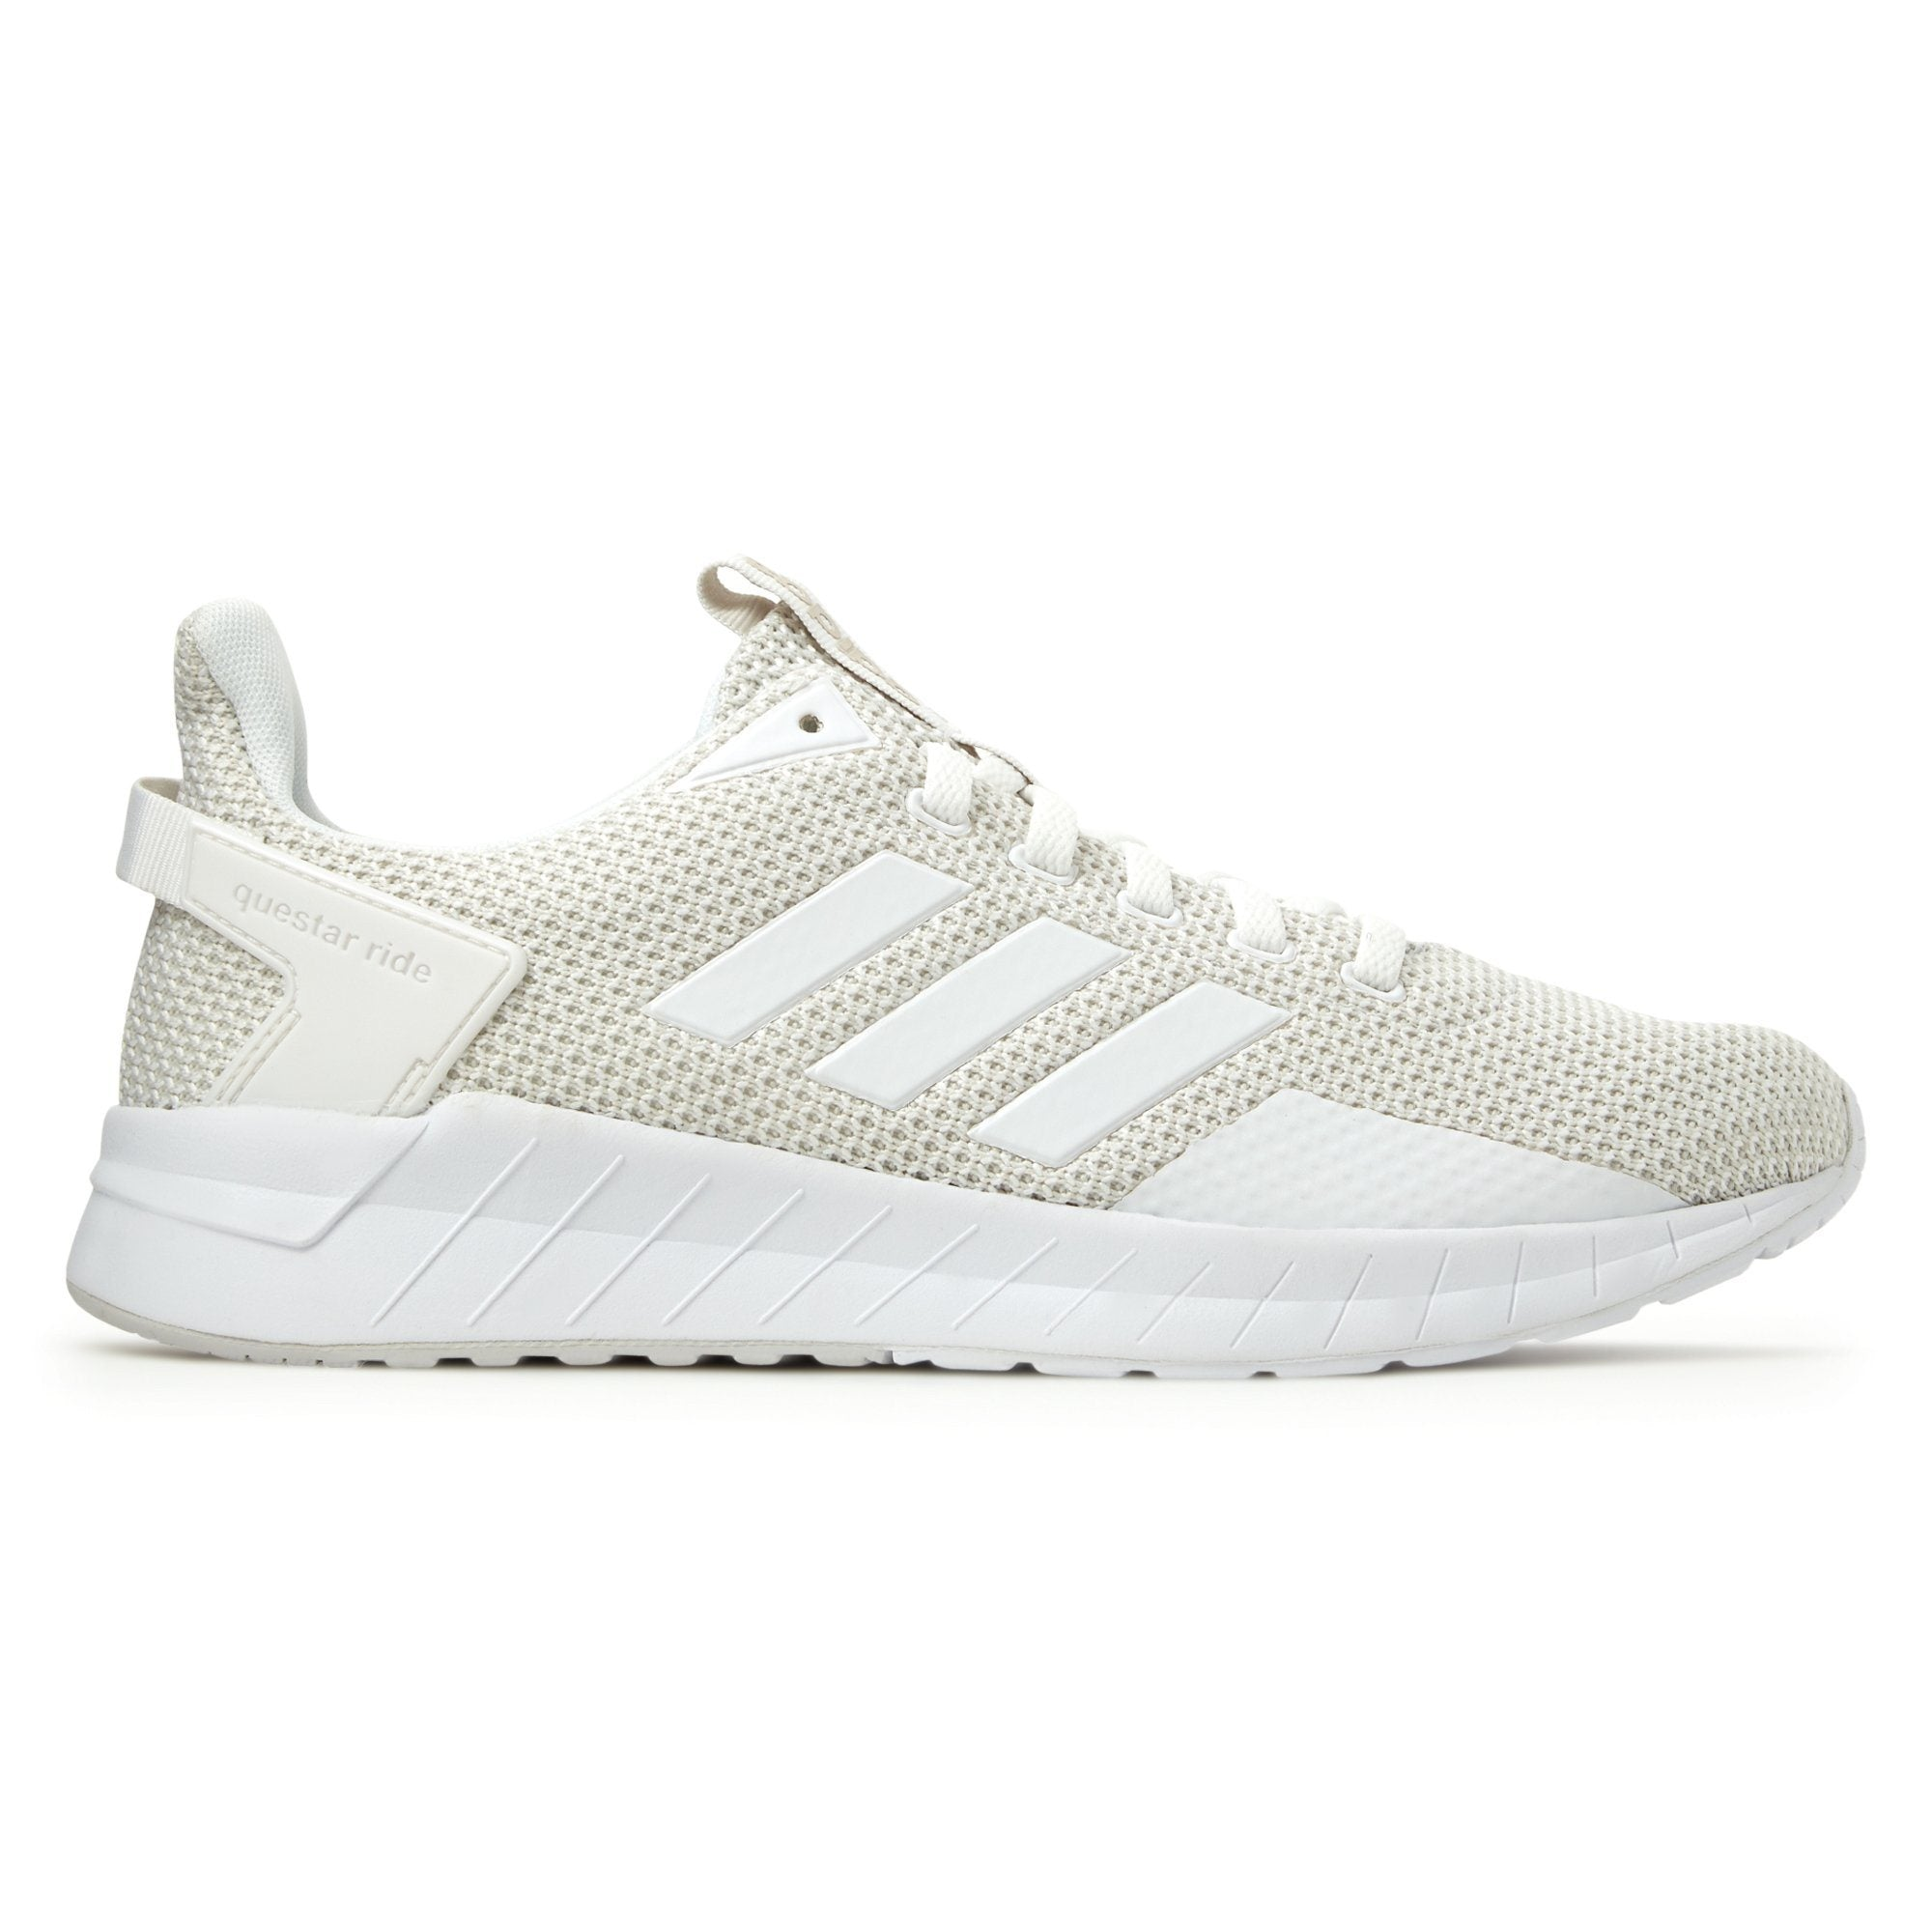 Adidas Women's Questar Ride Shoes - Ftwr White / ftwr White / Grey One Footwear Adidas